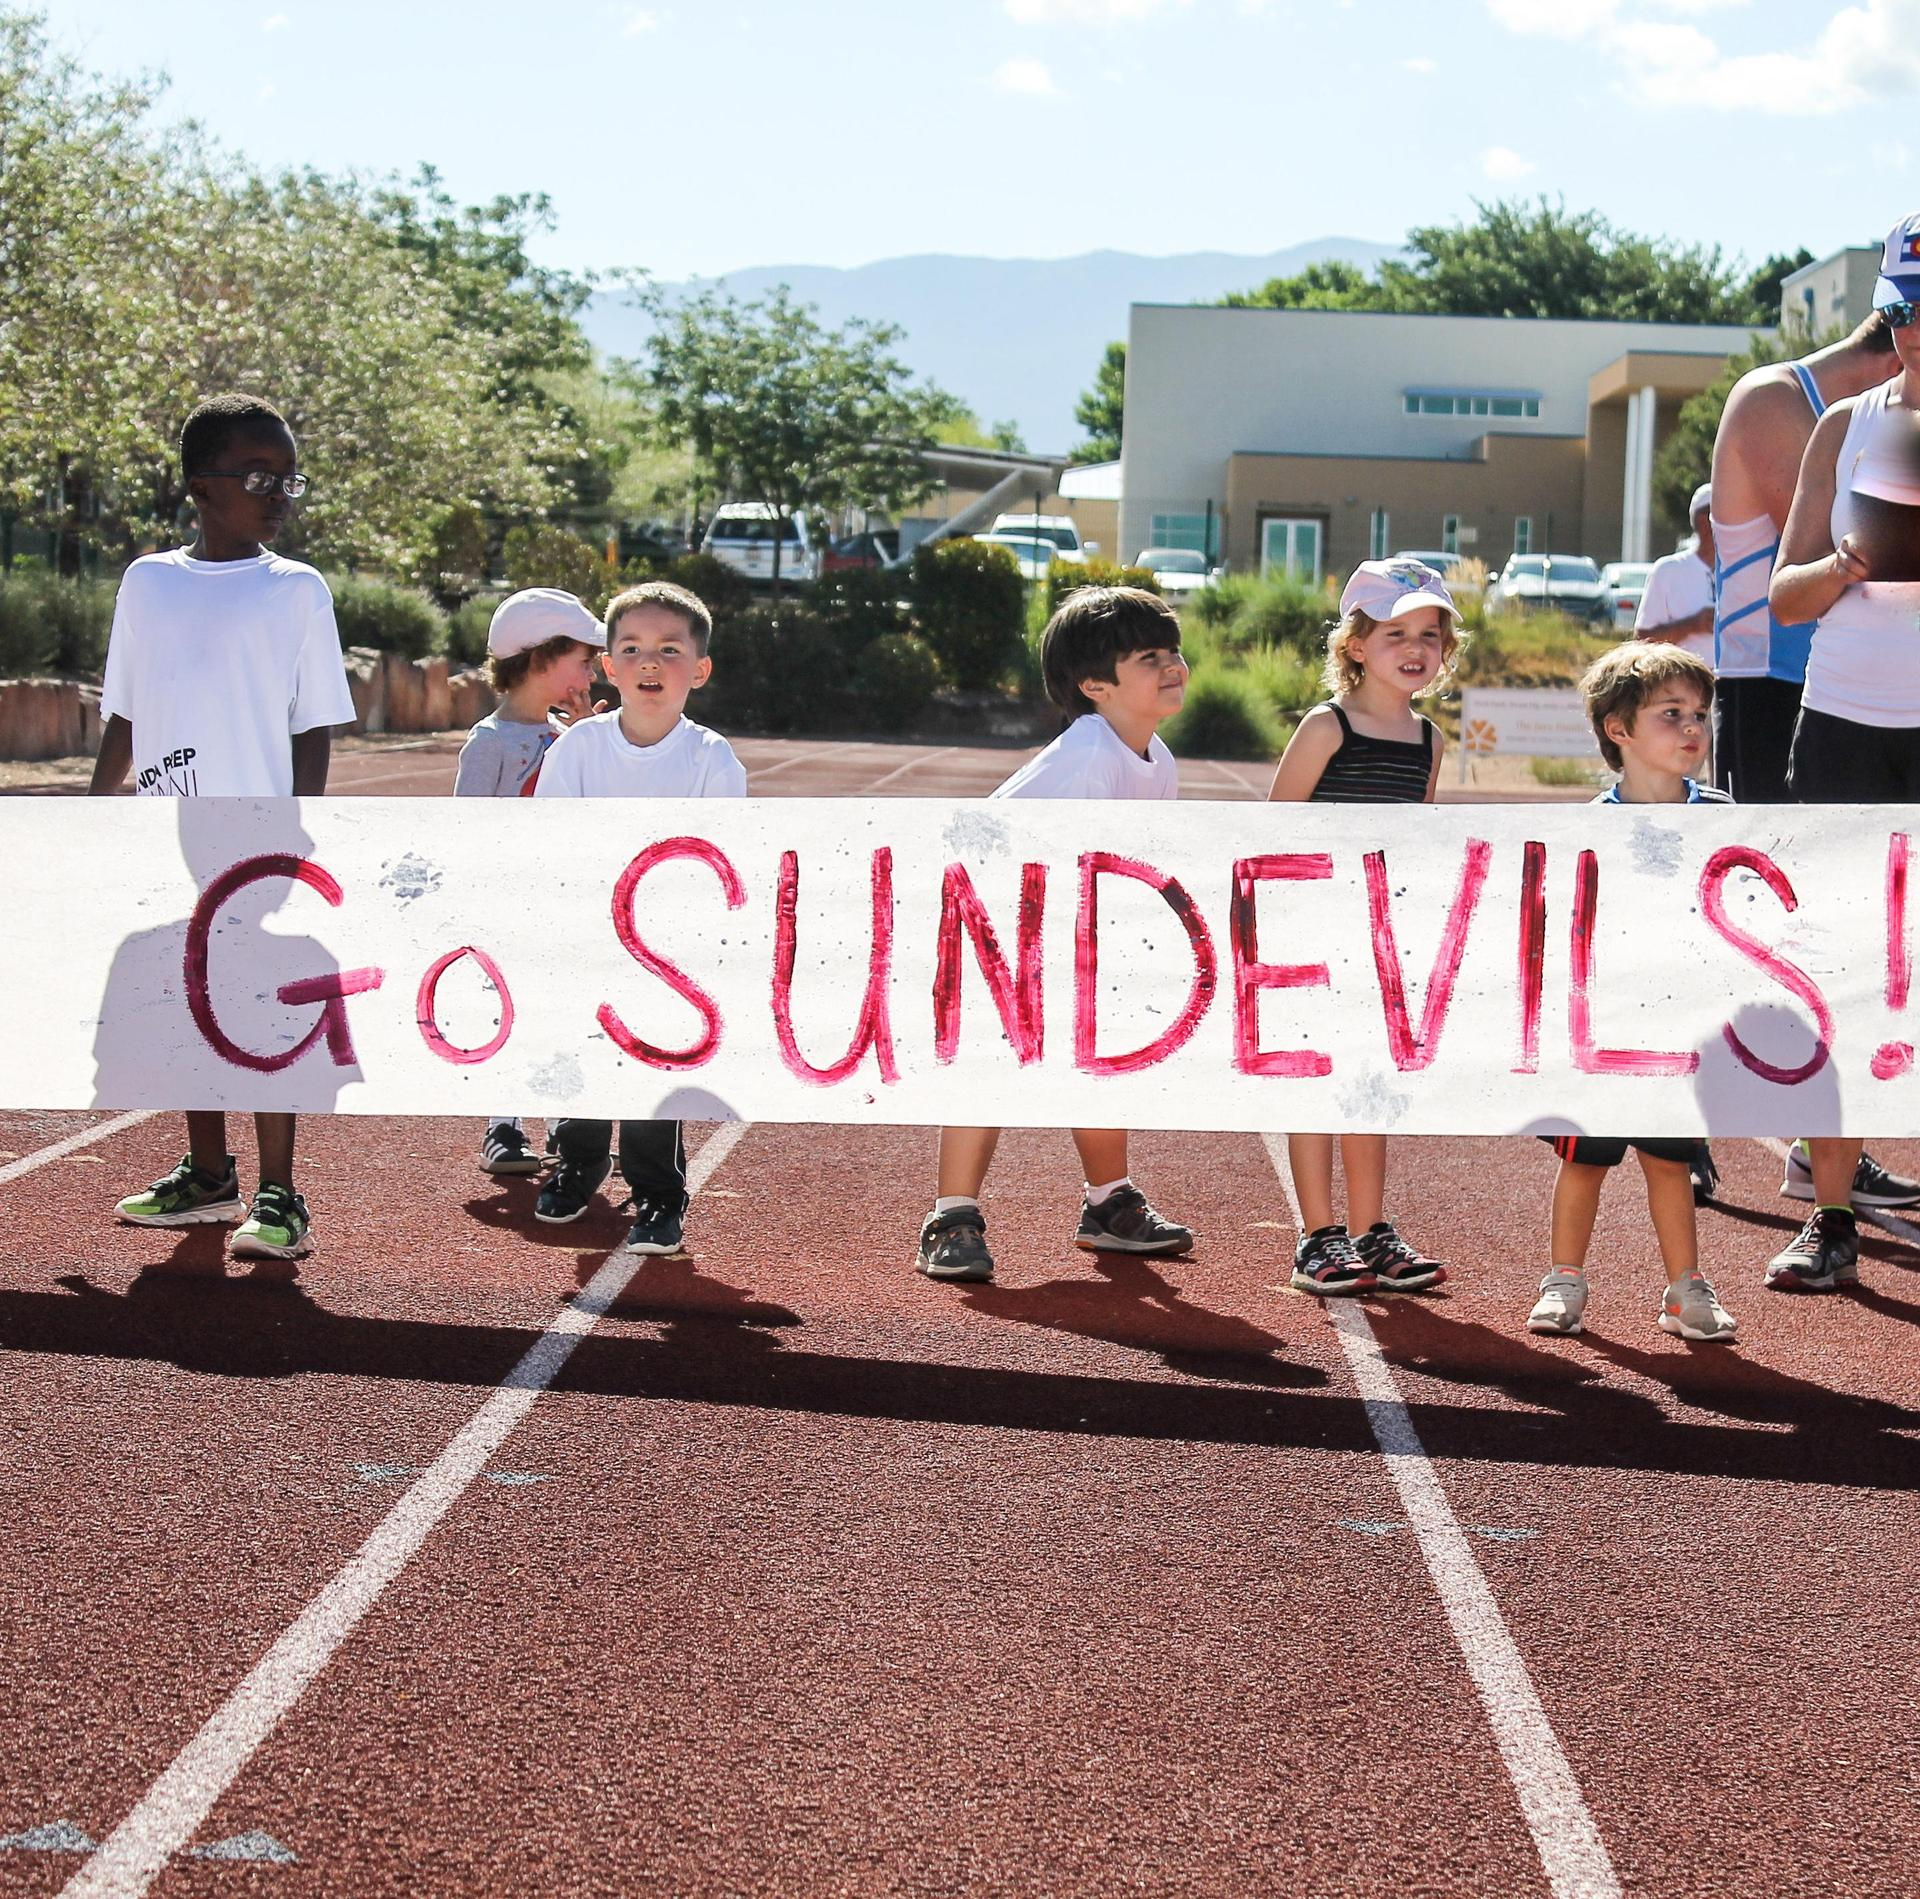 Children hold 'Go Sundevils' banner for 5K race